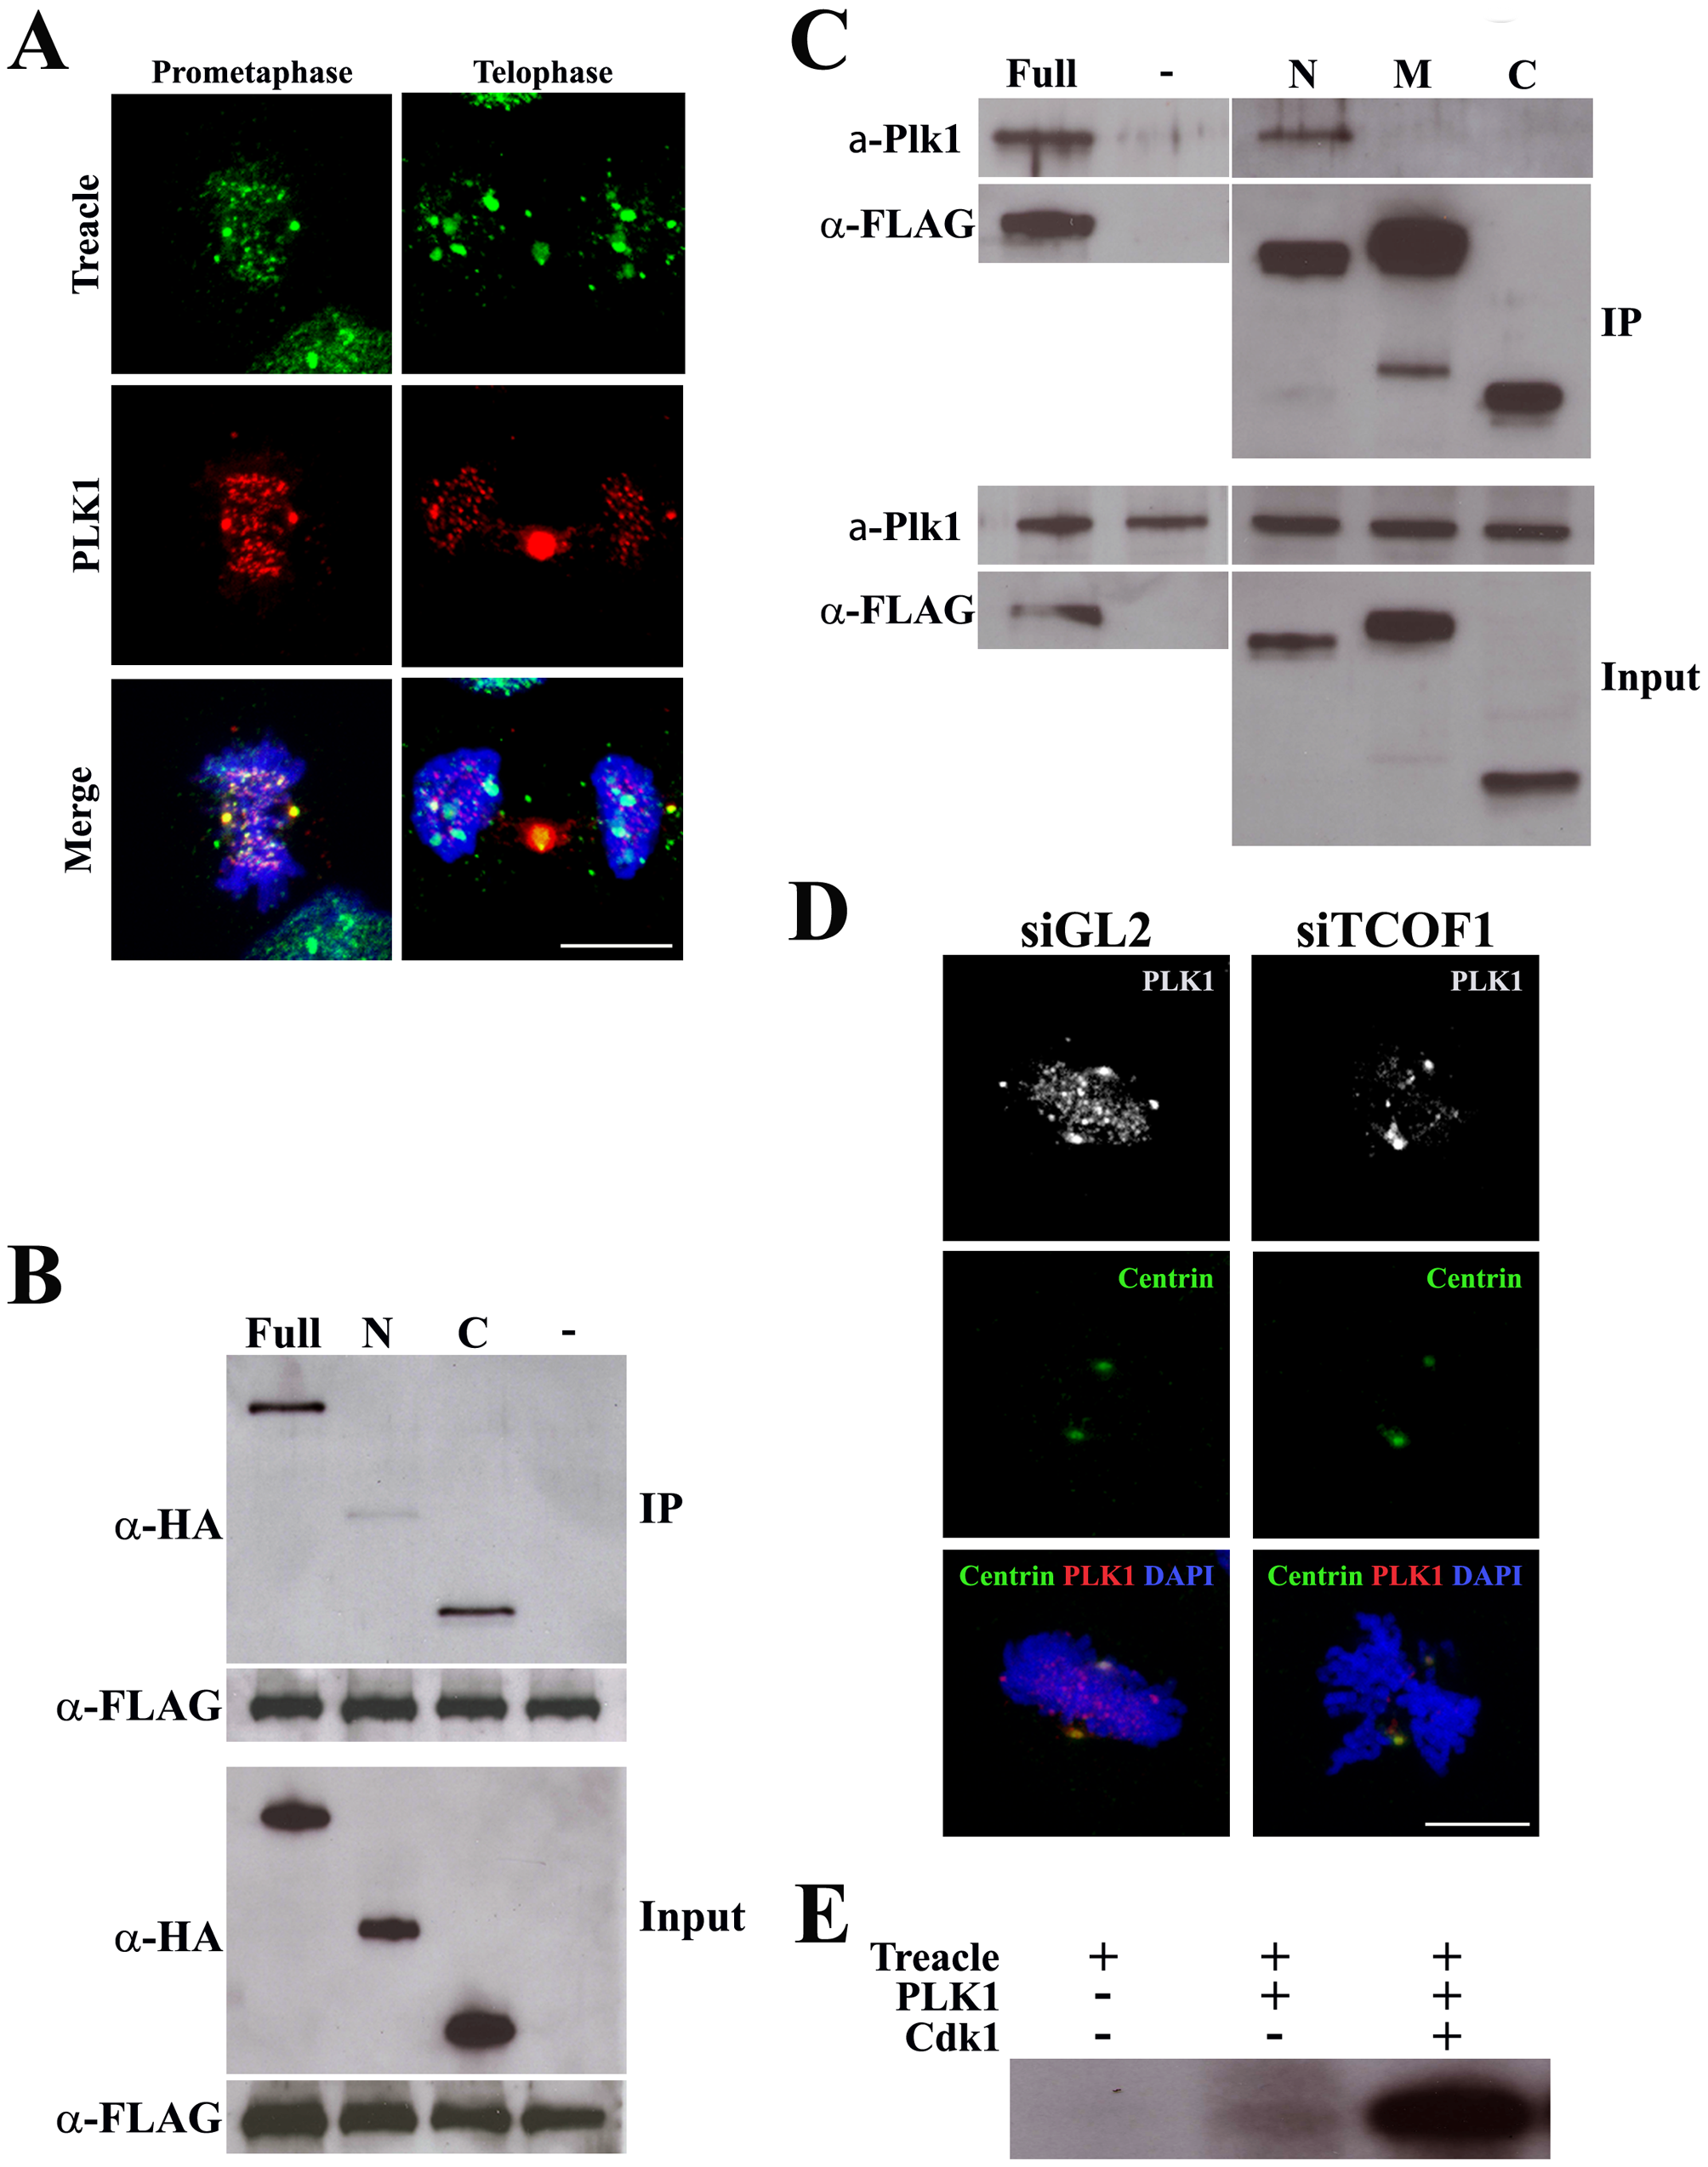 Treacle interacts with PLK1 and mediates its localization.